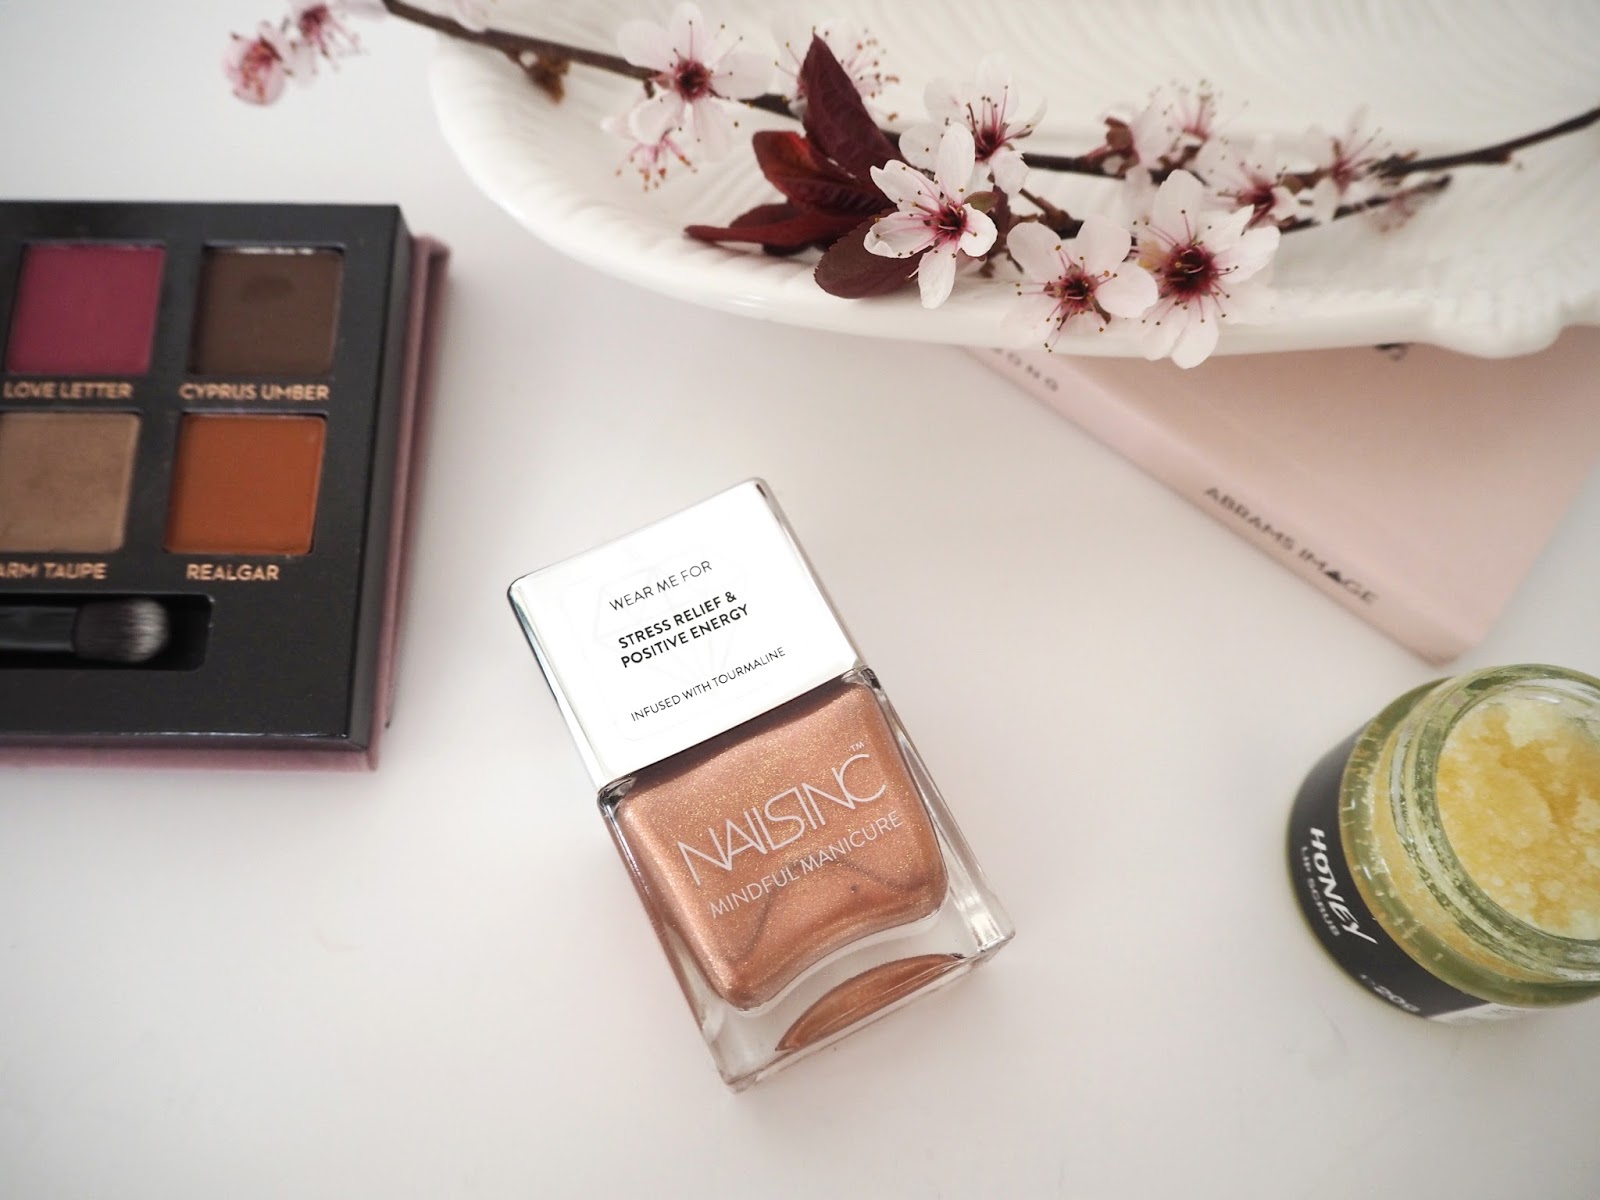 Loves List: March, Katie Kirk Loves, UK Blogger, Beauty Blogger, Lifestyle Blogger, Make Up Blogger, Skincare Blogger, Monthly Favourites, Beauty Review, Skincare Review, Nails Inc Mindful Manicure, Nail Blogger, Nail Swatches, Rose Gold Manicure